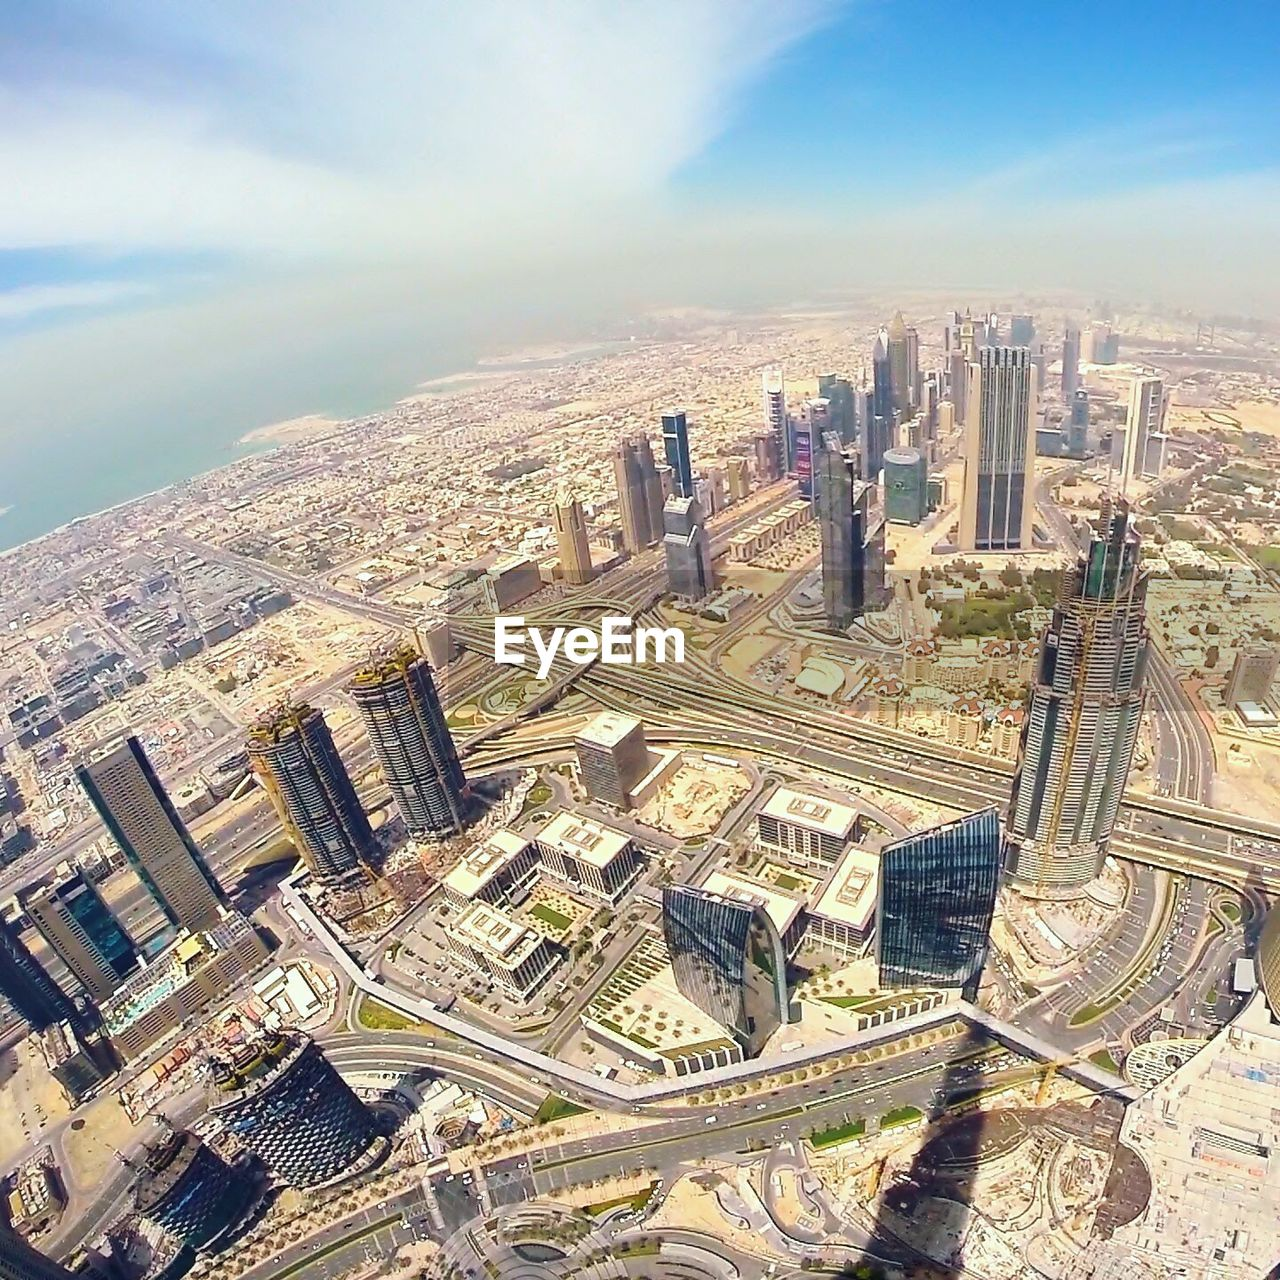 architecture, cityscape, building exterior, skyscraper, built structure, city, aerial view, sky, travel destinations, high angle view, sunlight, modern, no people, day, outdoors, downtown district, growth, road, urban skyline